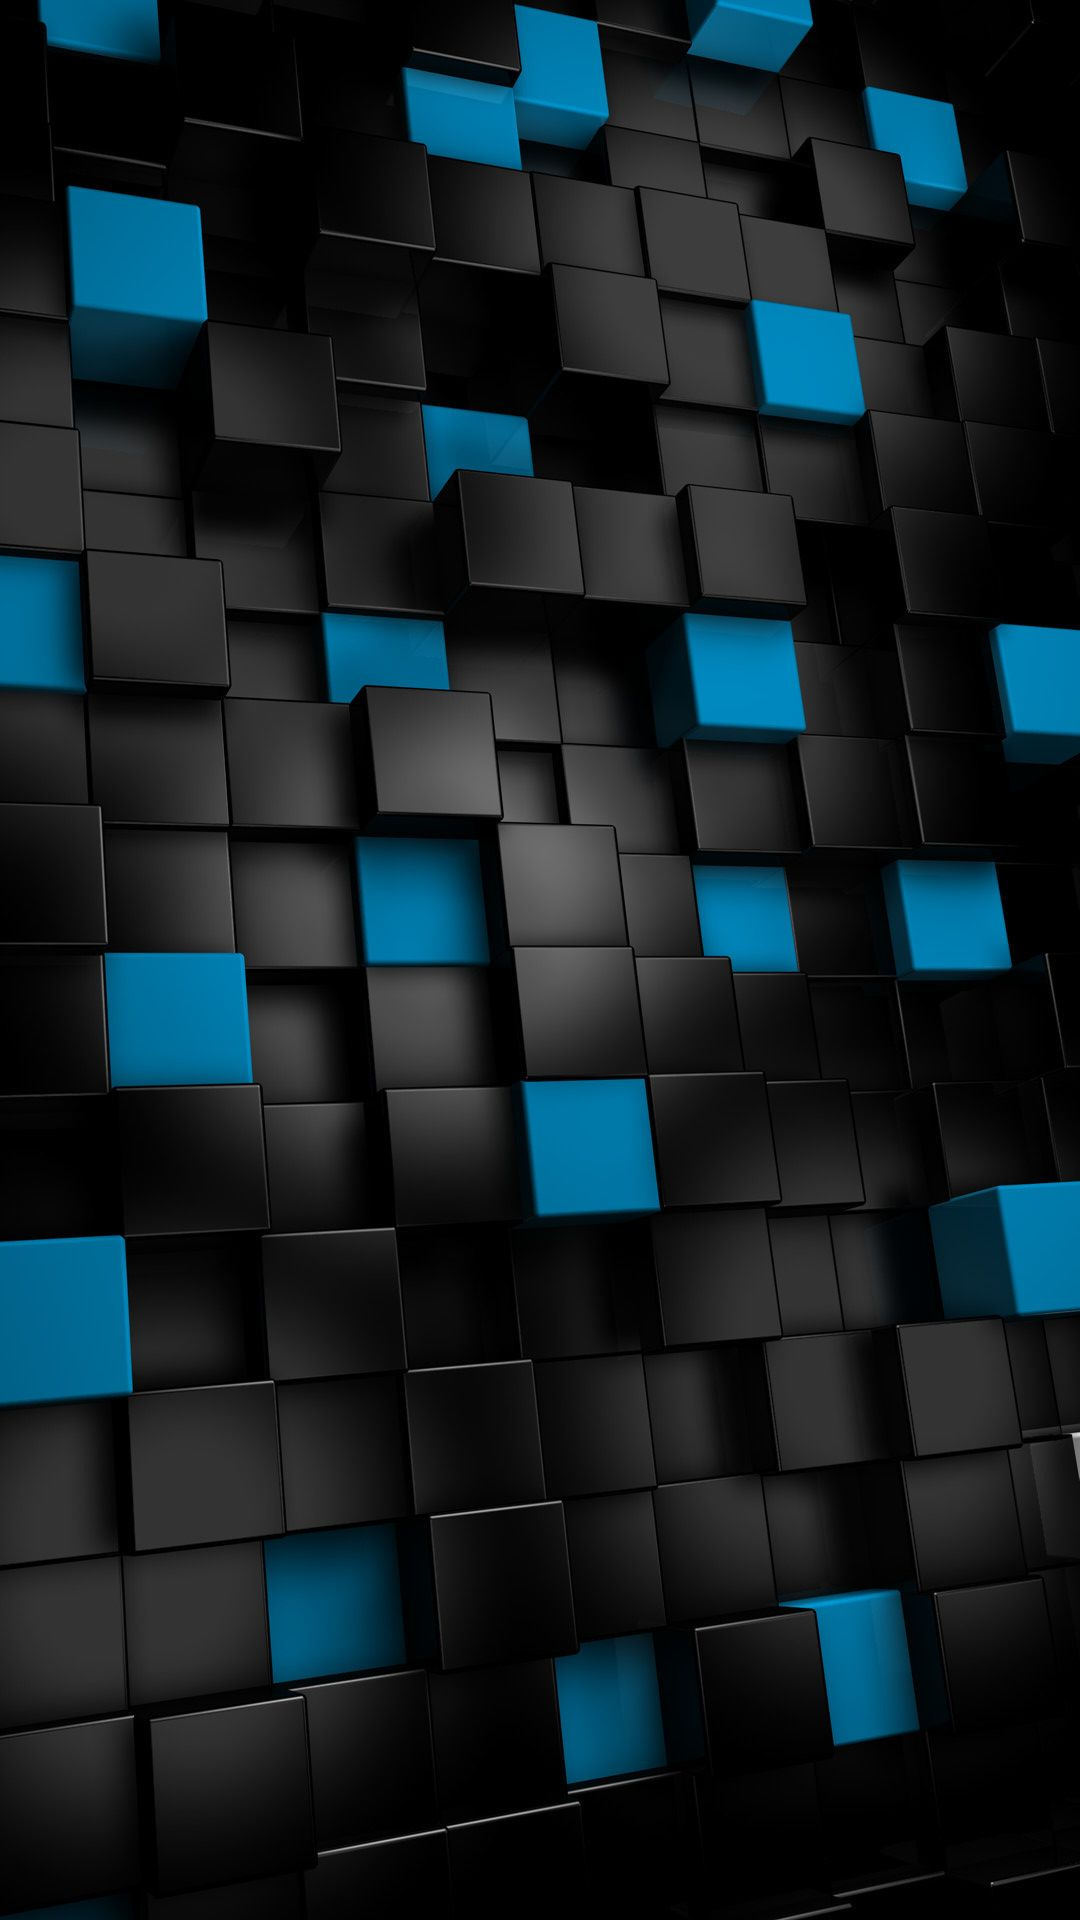 Abstract black cubes Htc wallpaper, Iphone 6 plus